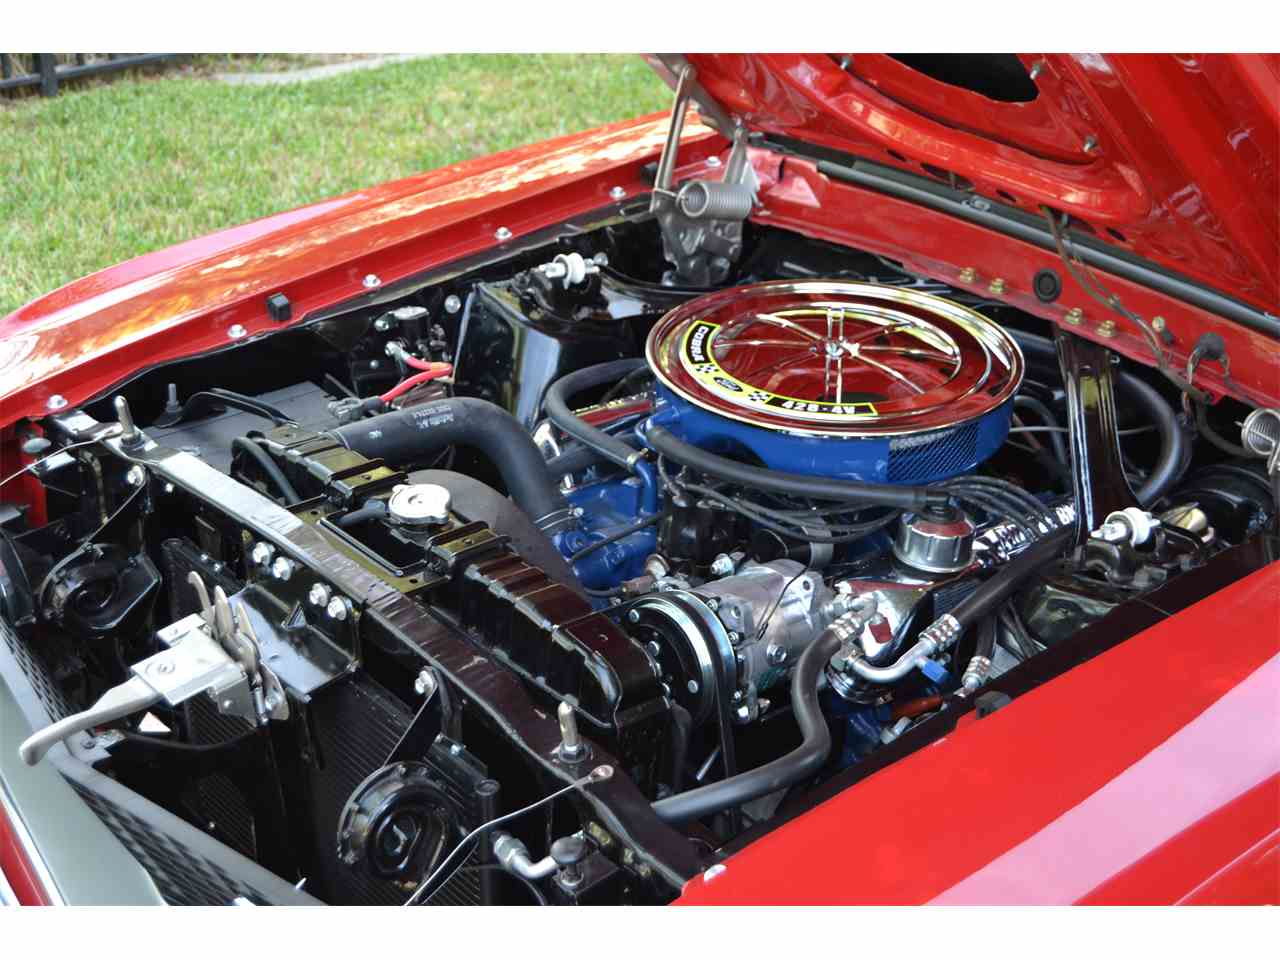 Large Picture of Classic 1969 Mustang Mach 1 located in Punta Gorda Florida - $68,500.00 Offered by a Private Seller - FQAH